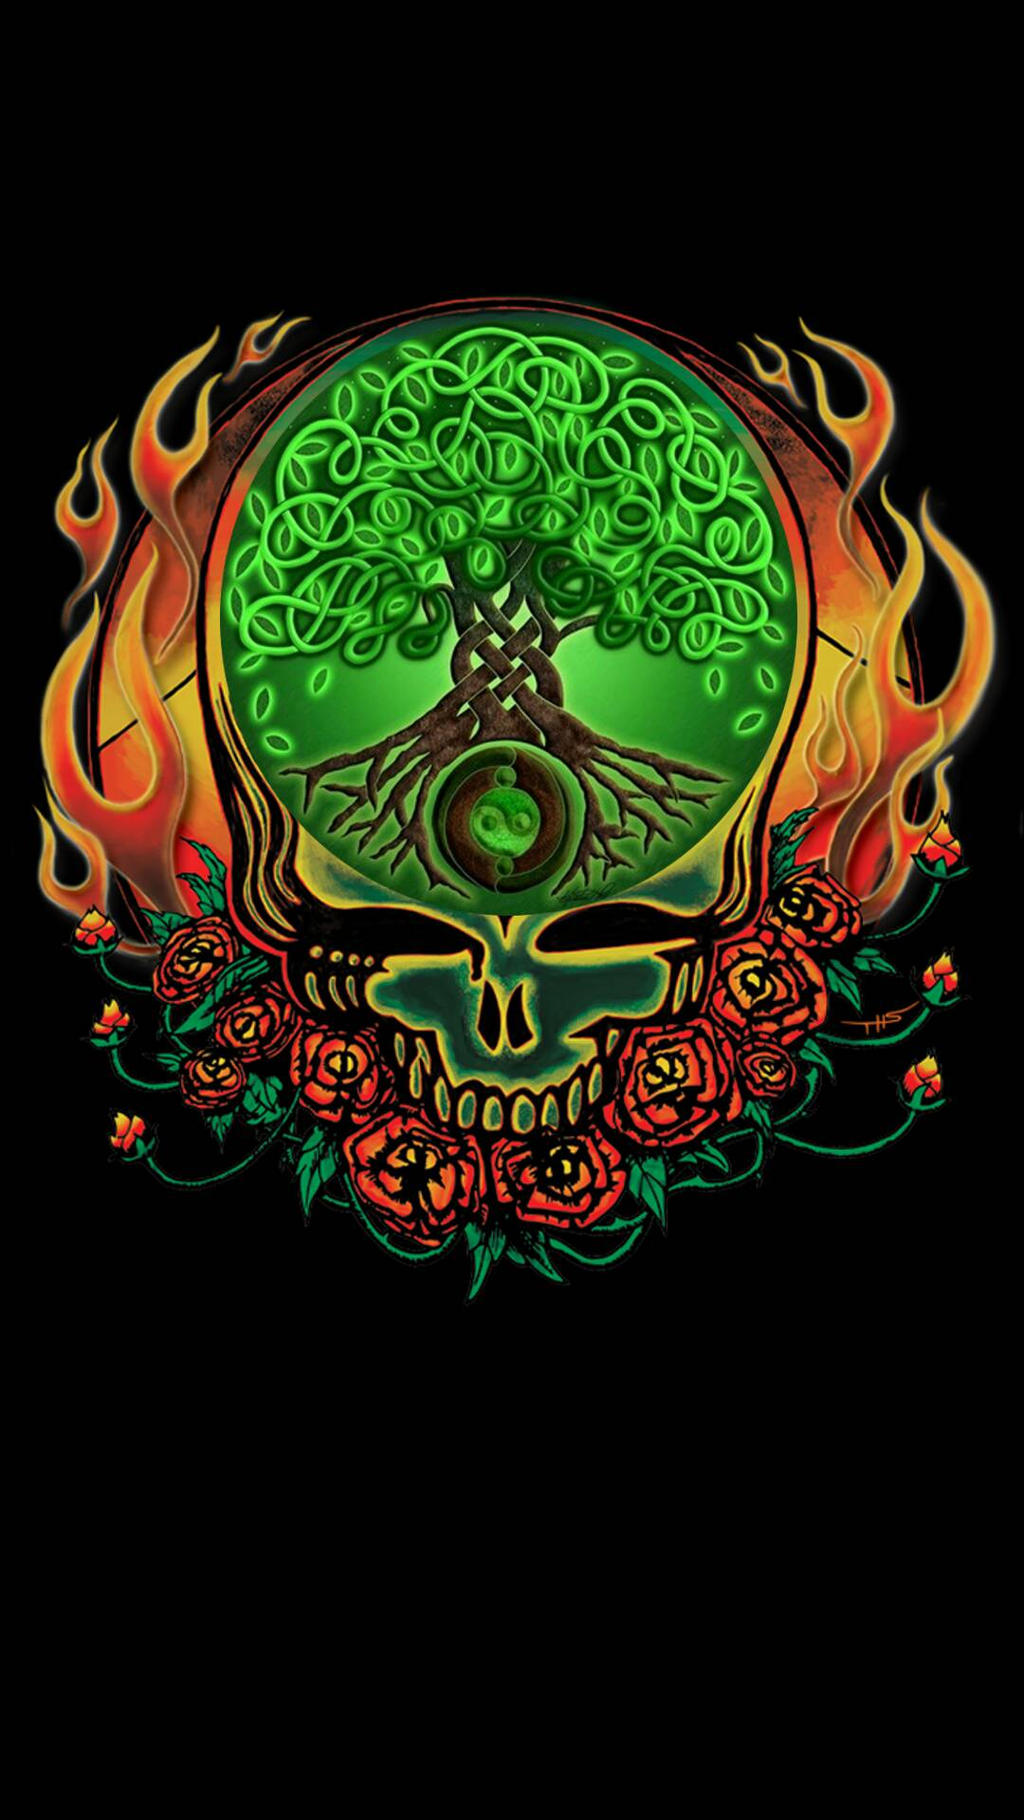 Grateful Dead Celtic Knot Tree Of Life By Ej2dole